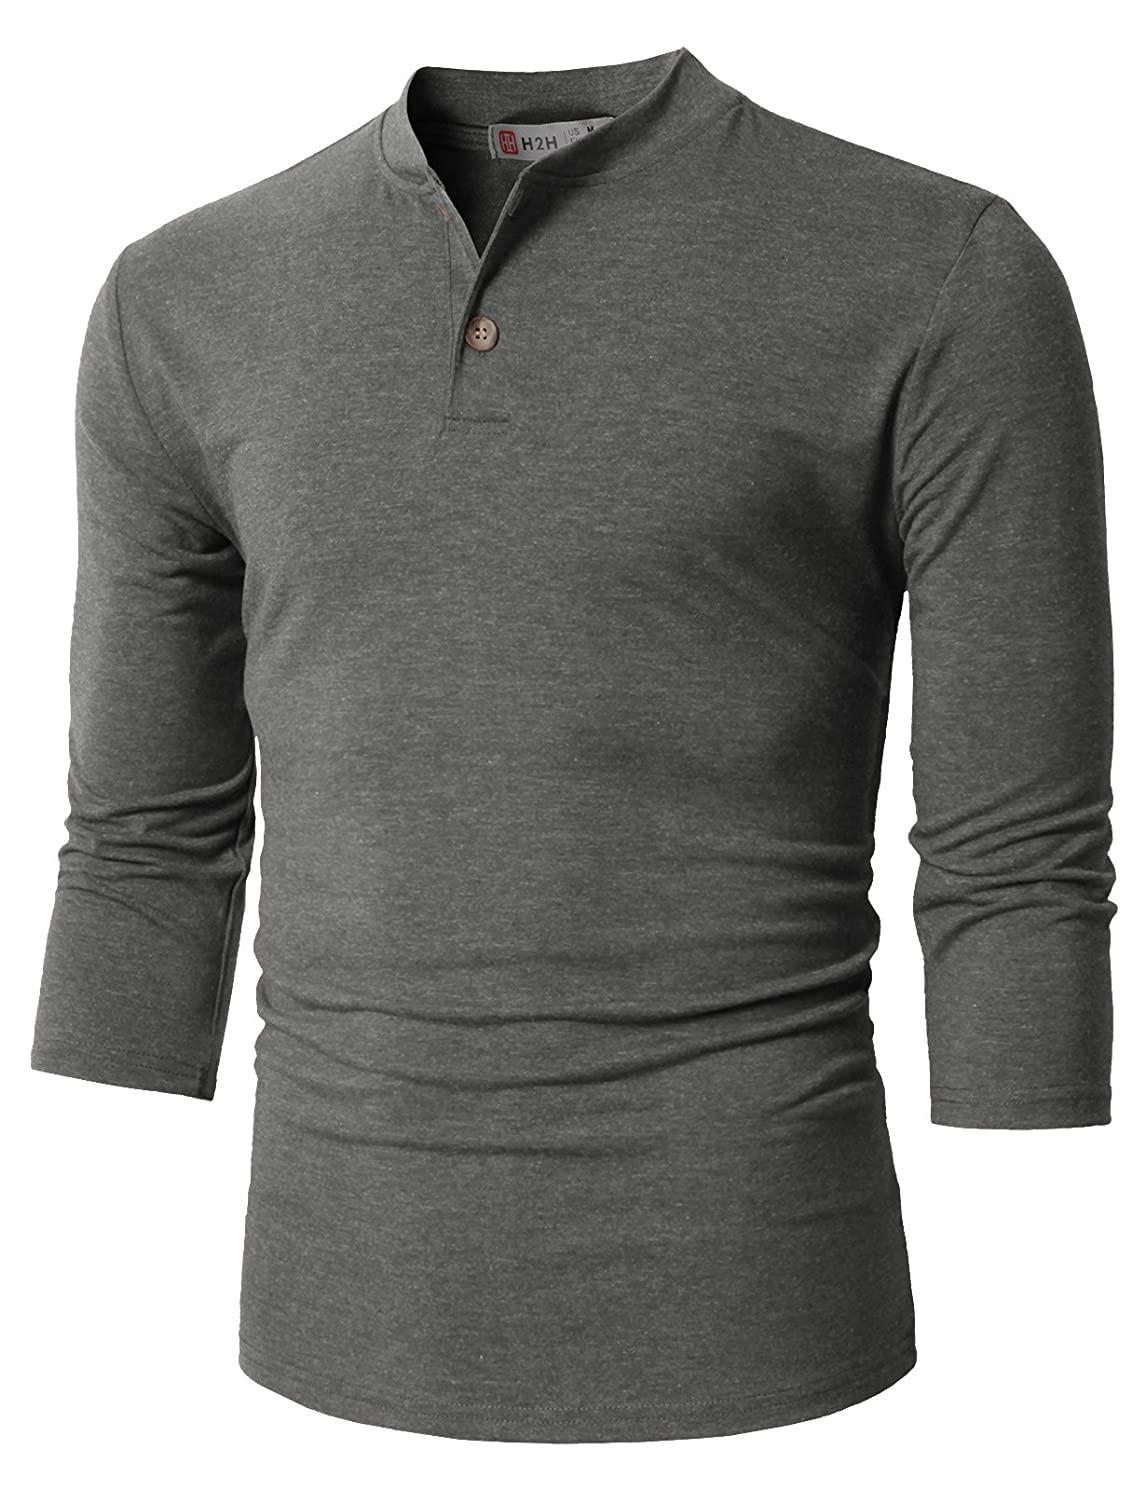 H2H Mens Casual Slim Fit Henley Shirts Lightweight Thin Fabric and Various Styles